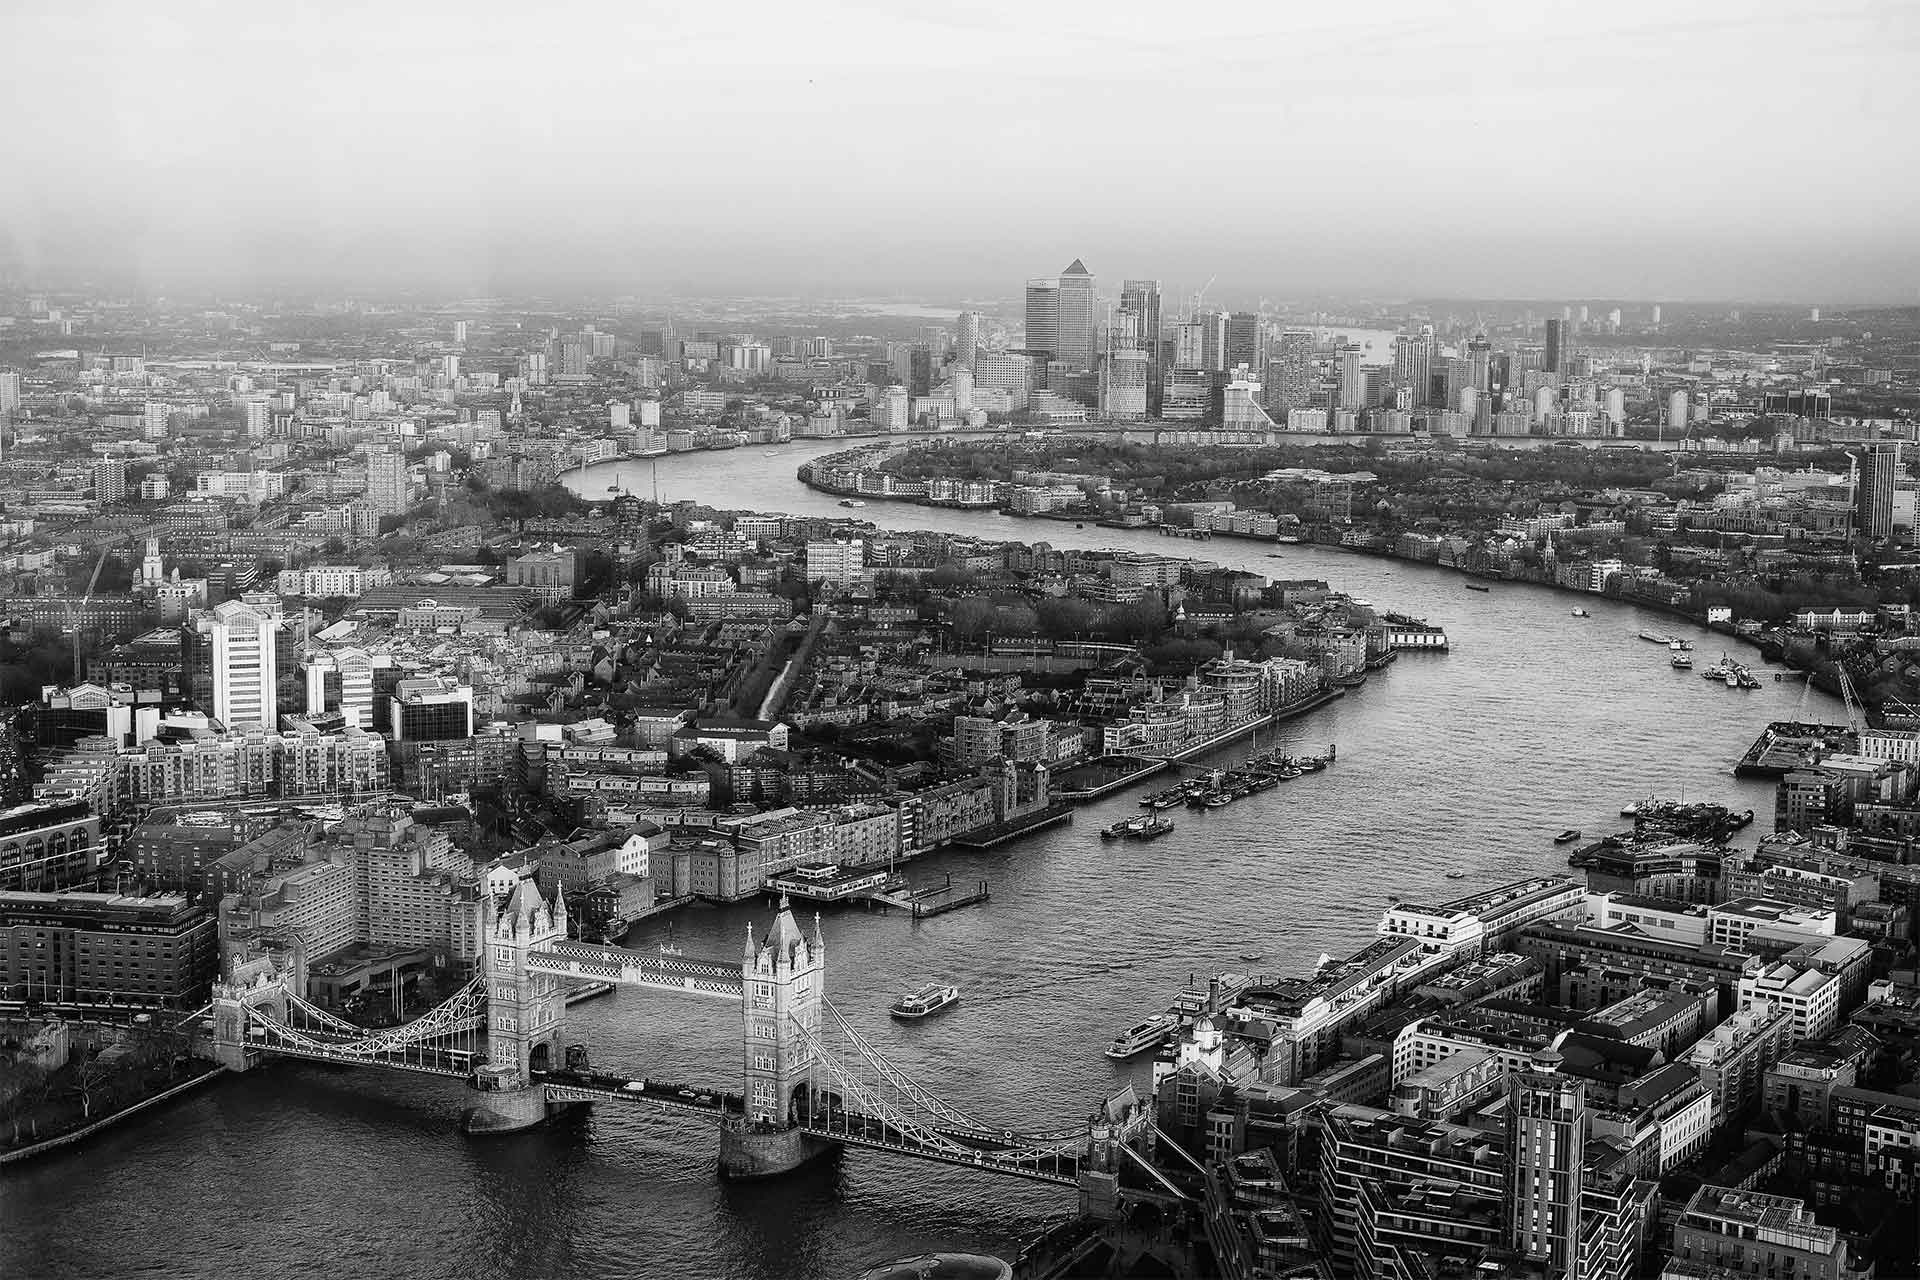 London from aerial view.